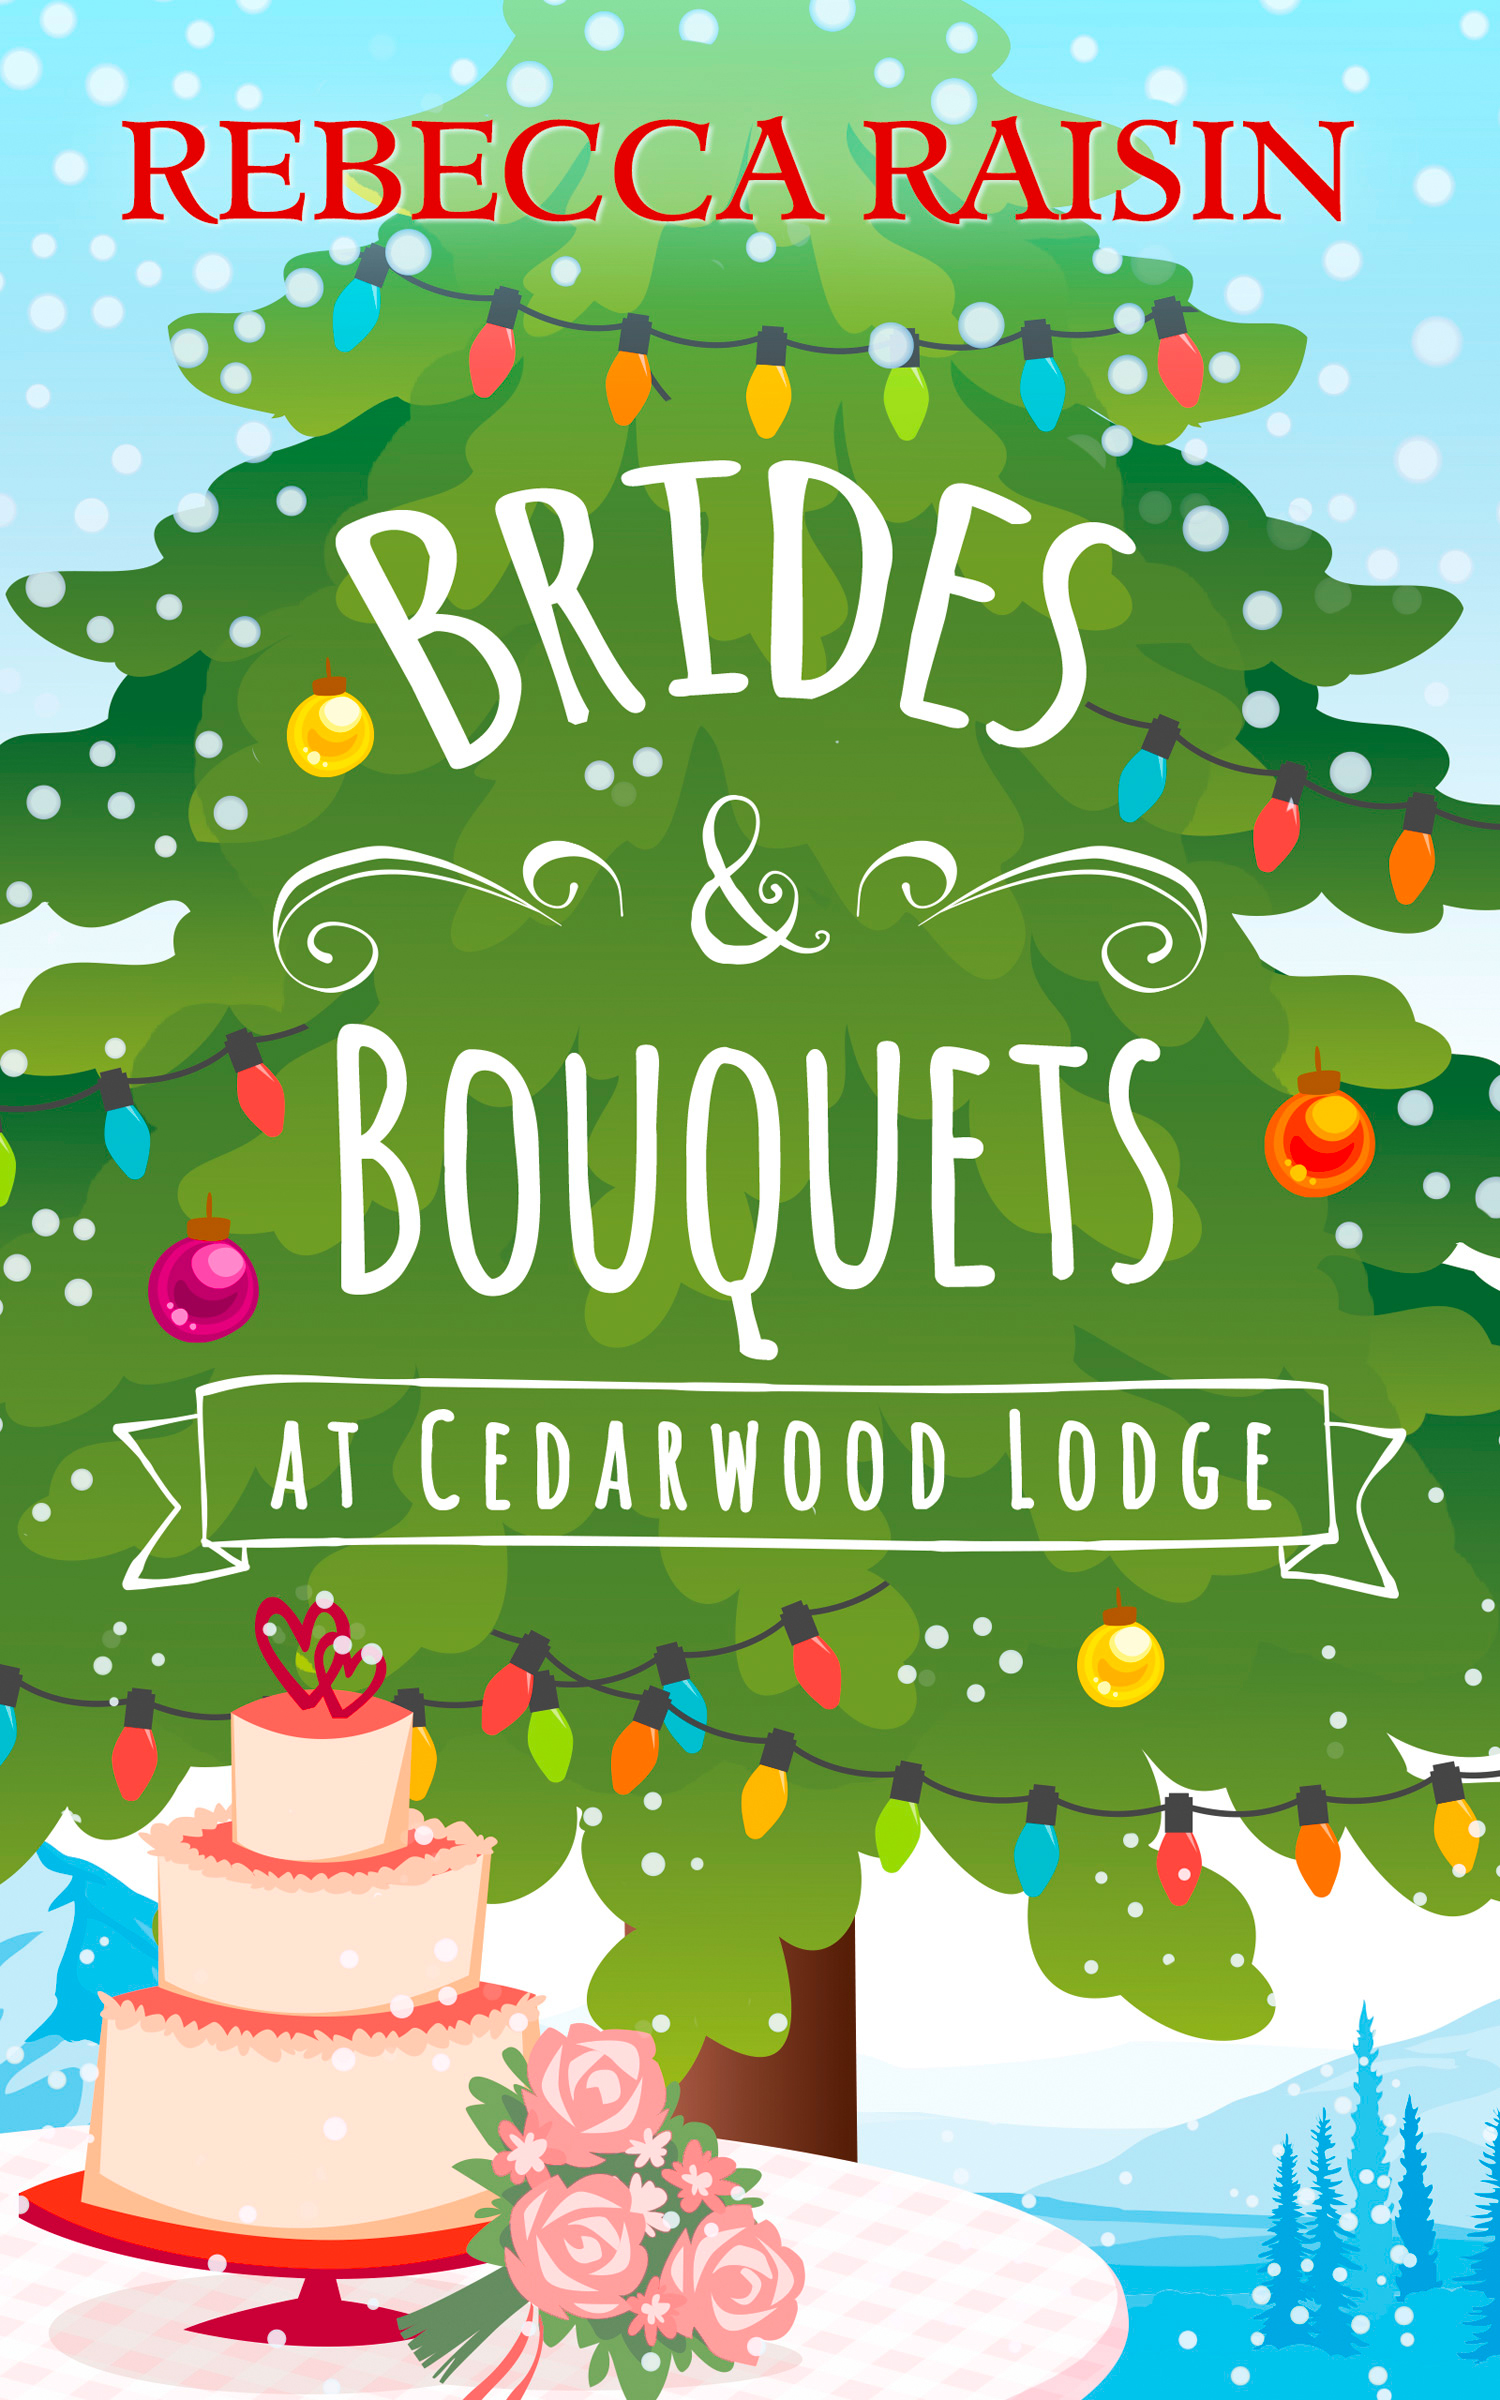 Brides and Bouquets At Cedarwood Lodge